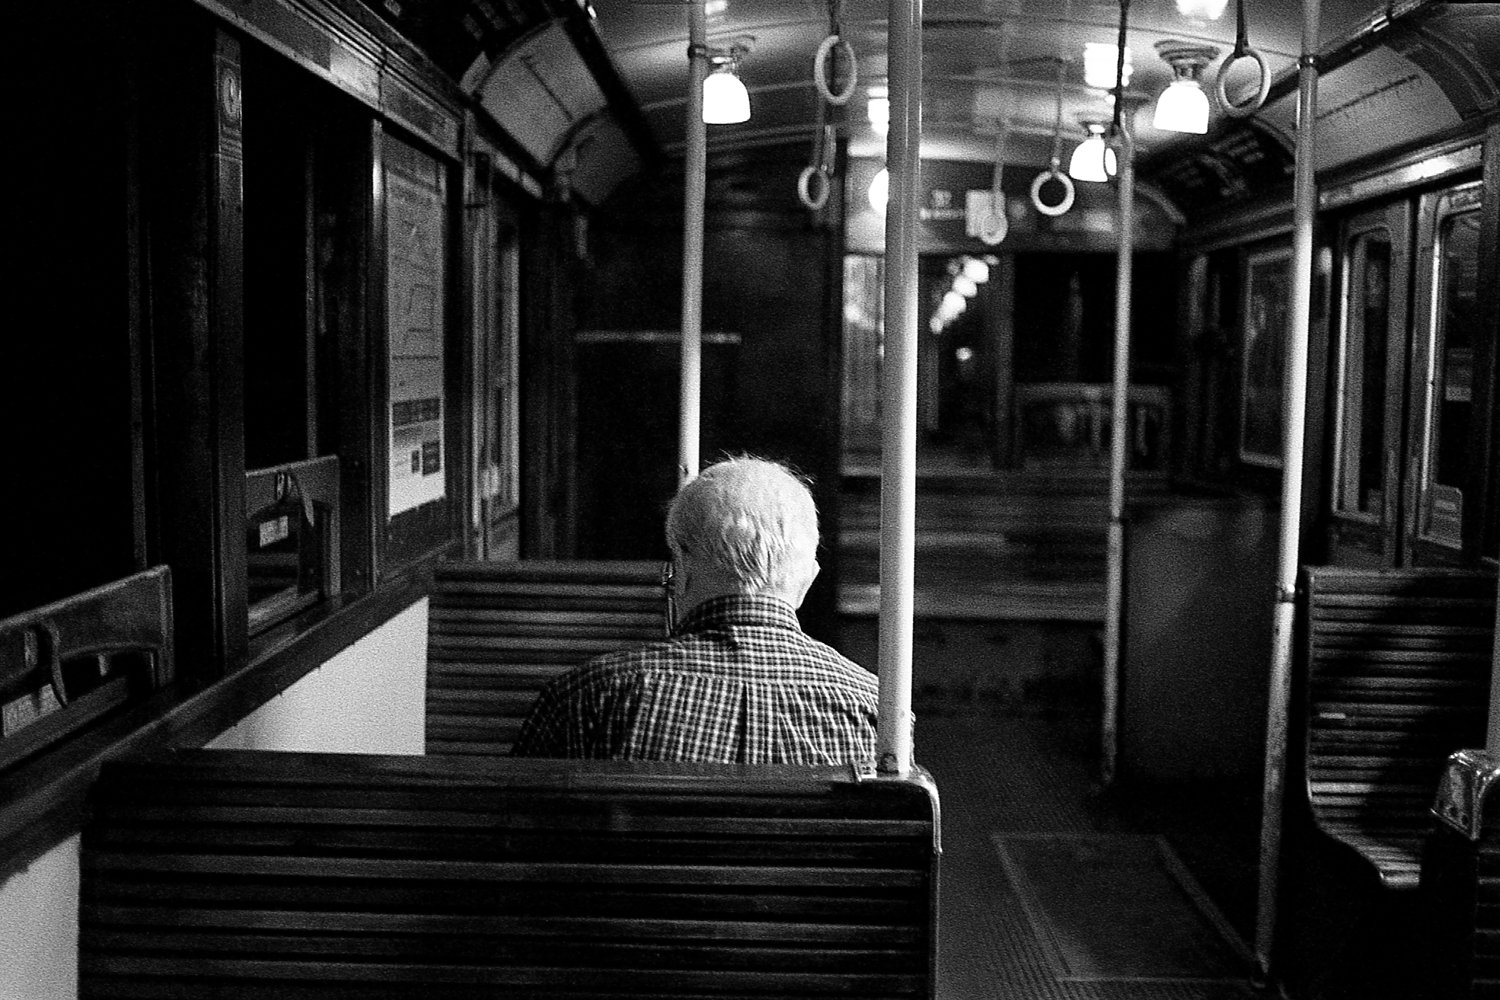 We travel on public transportation with the hope of forget our loneliness.